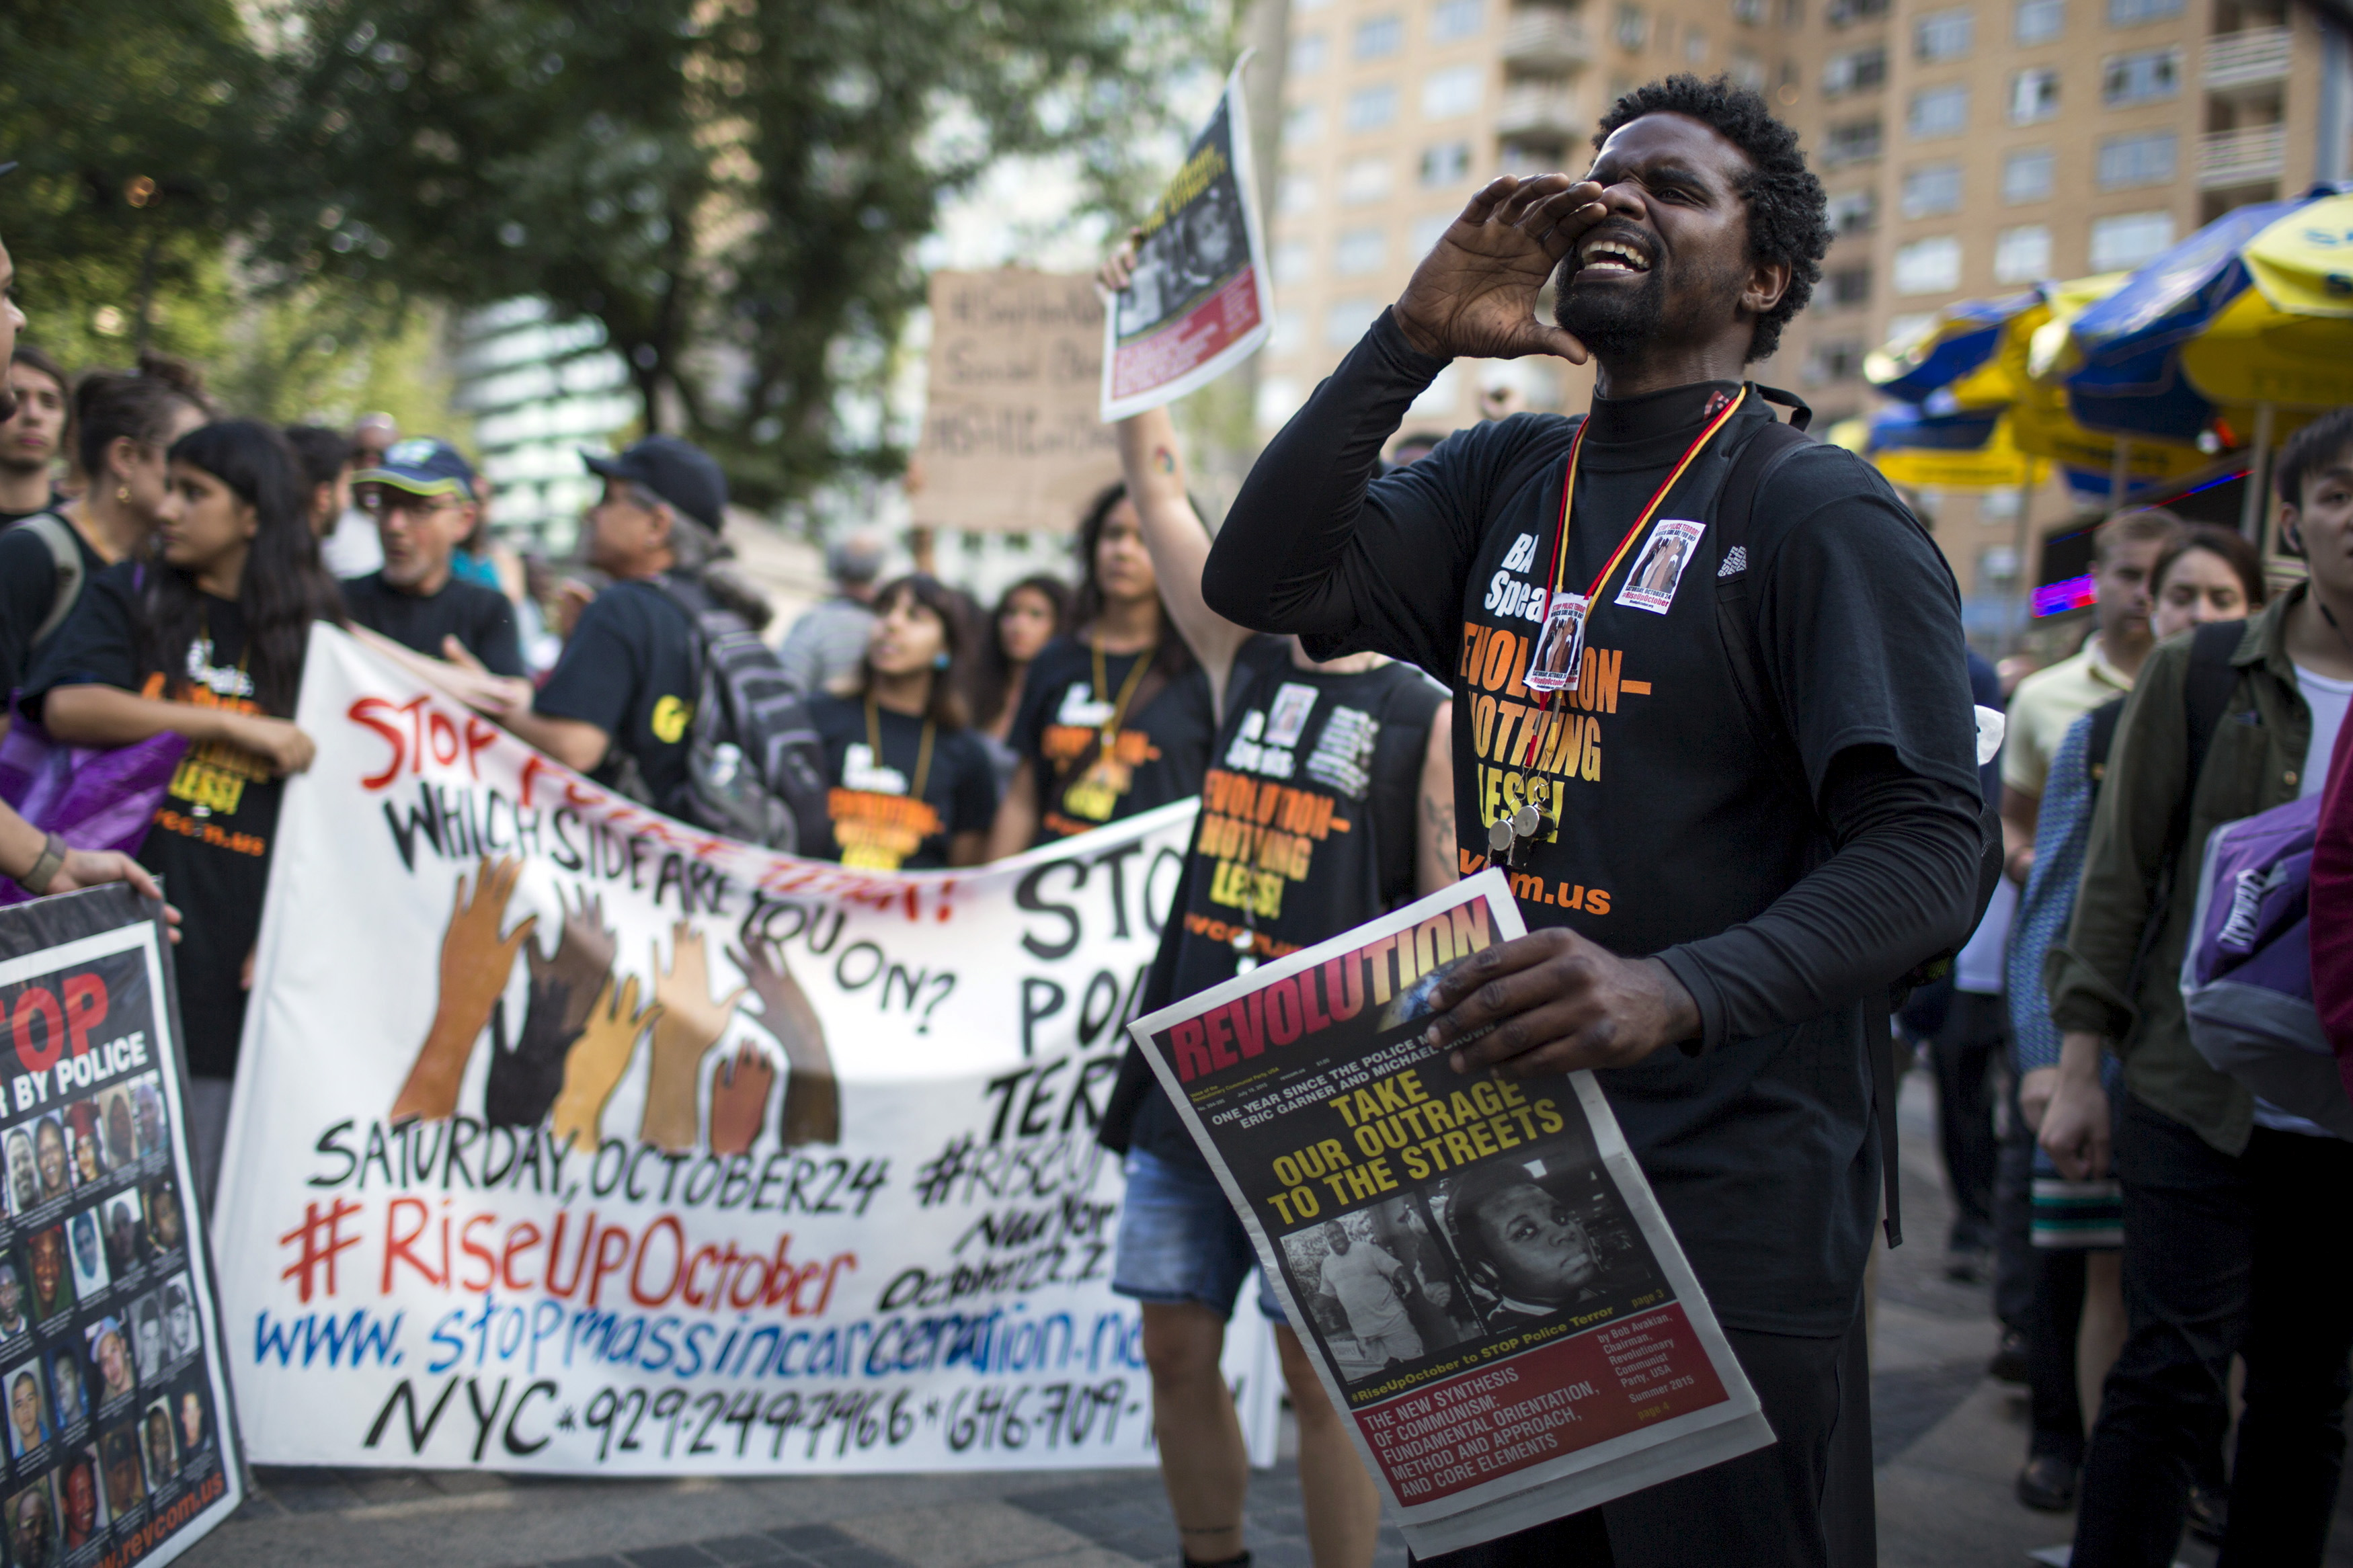 A protester shouts slogans against the New York Police Department during a July 17 rally for Eric Garner, who was killed one year ago by police in New York. Family and supporters on Friday marked the anniversary with rallies and vigils. Photo by Eduardo Munoz/Reuters